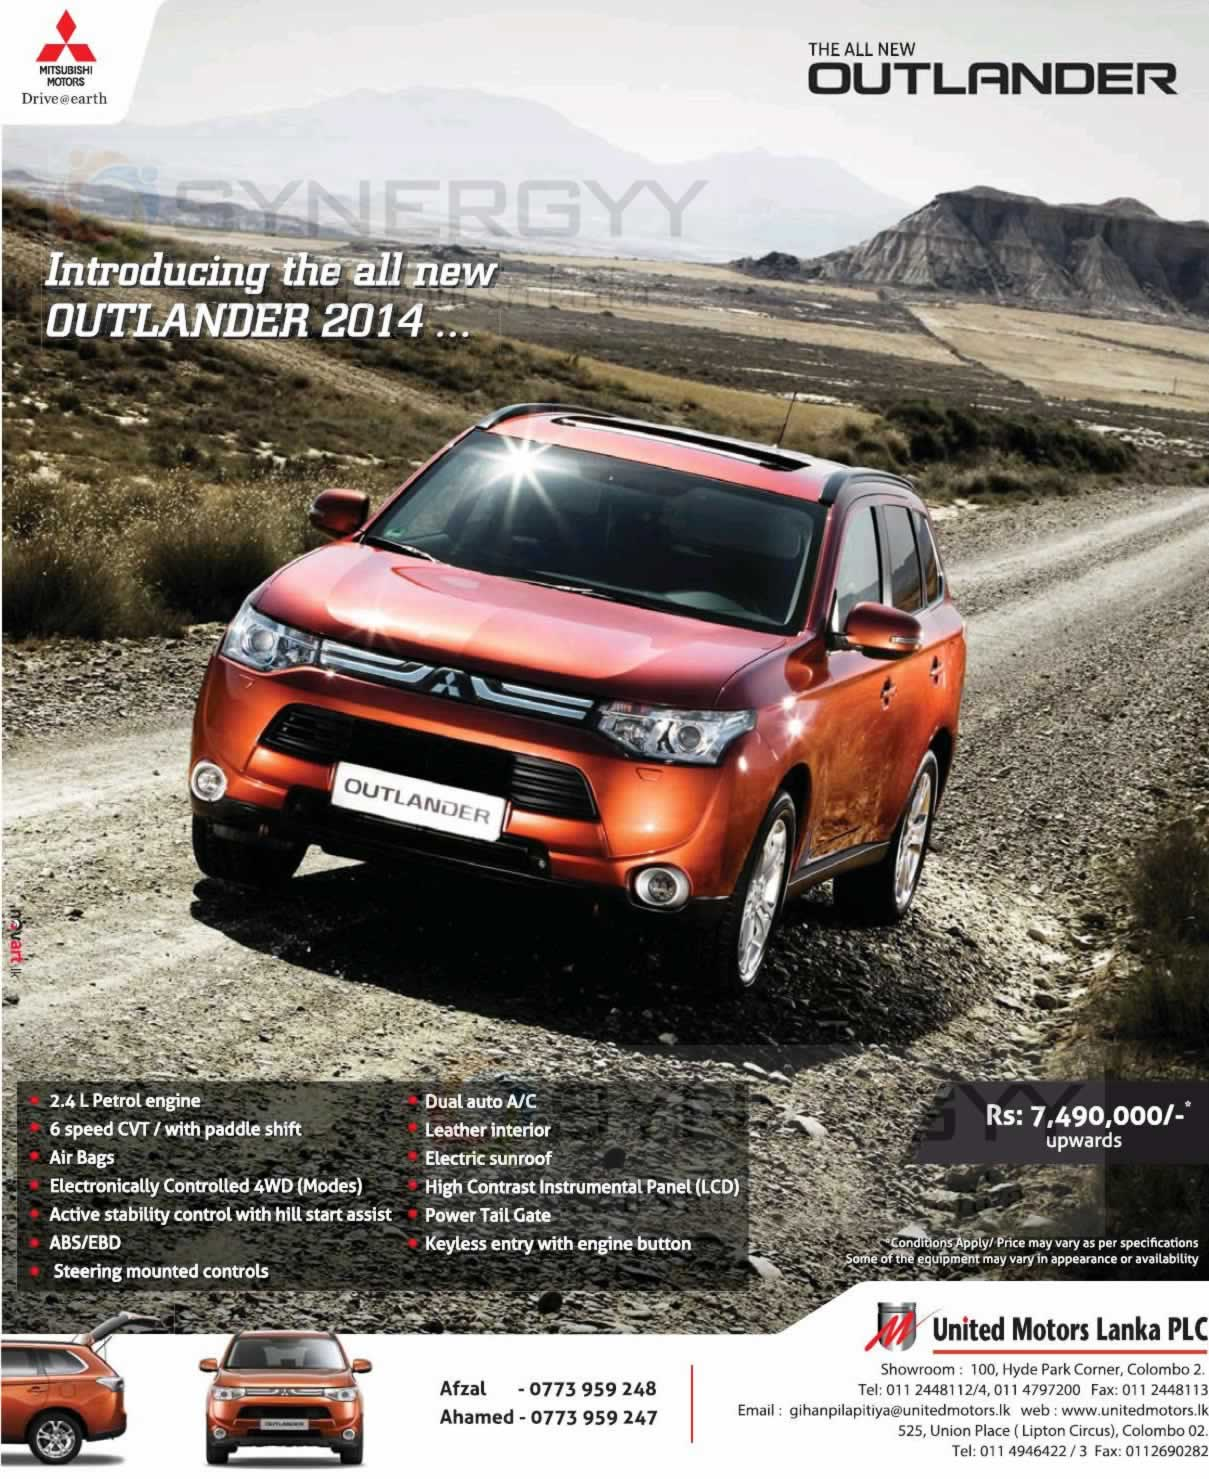 Mitsubishi Outlander 2014 Now In Sri Lanka For Rs